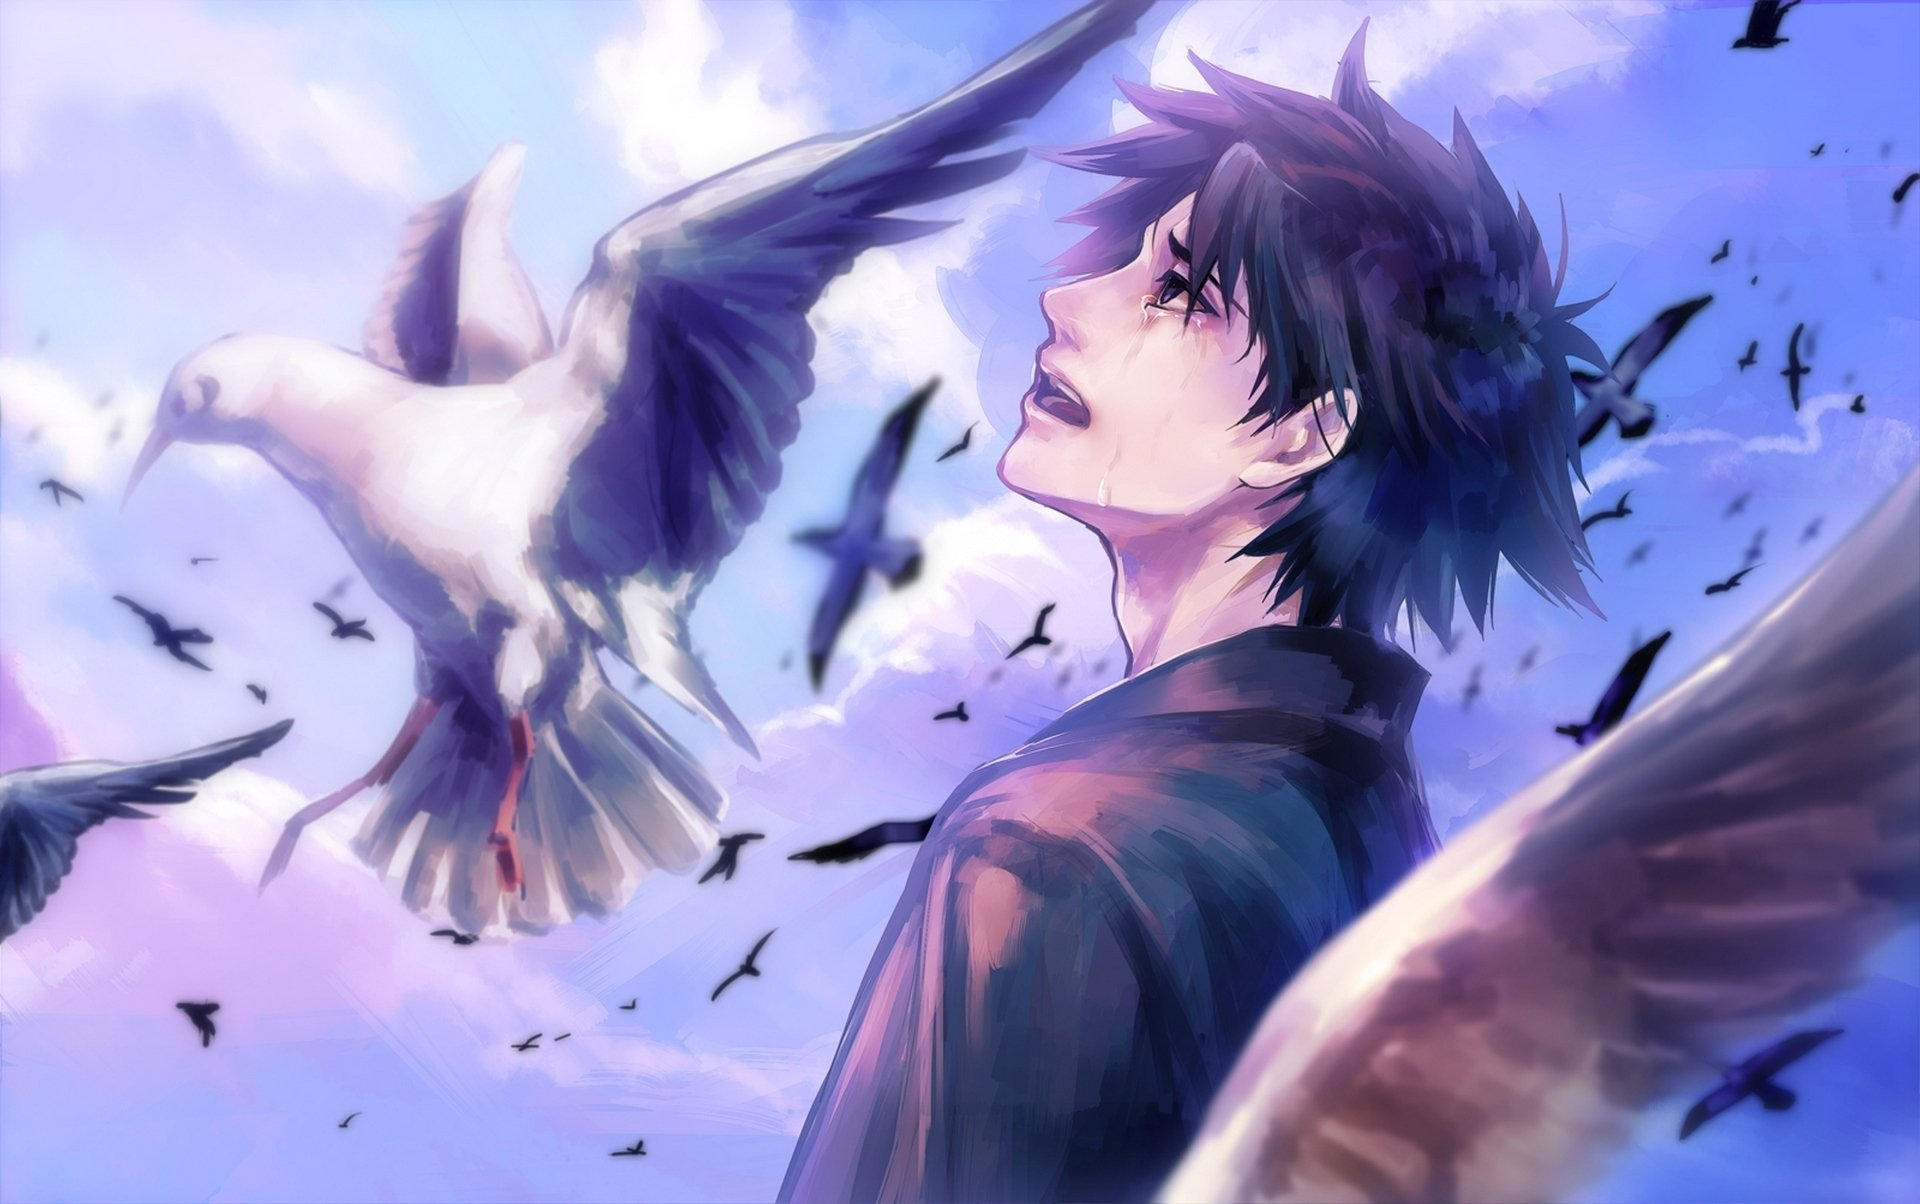 crying Boy In Love Wallpaper Hd : Anime boy cry bird clouds sky wallpaper 1920x1204 538596 WallpaperUP